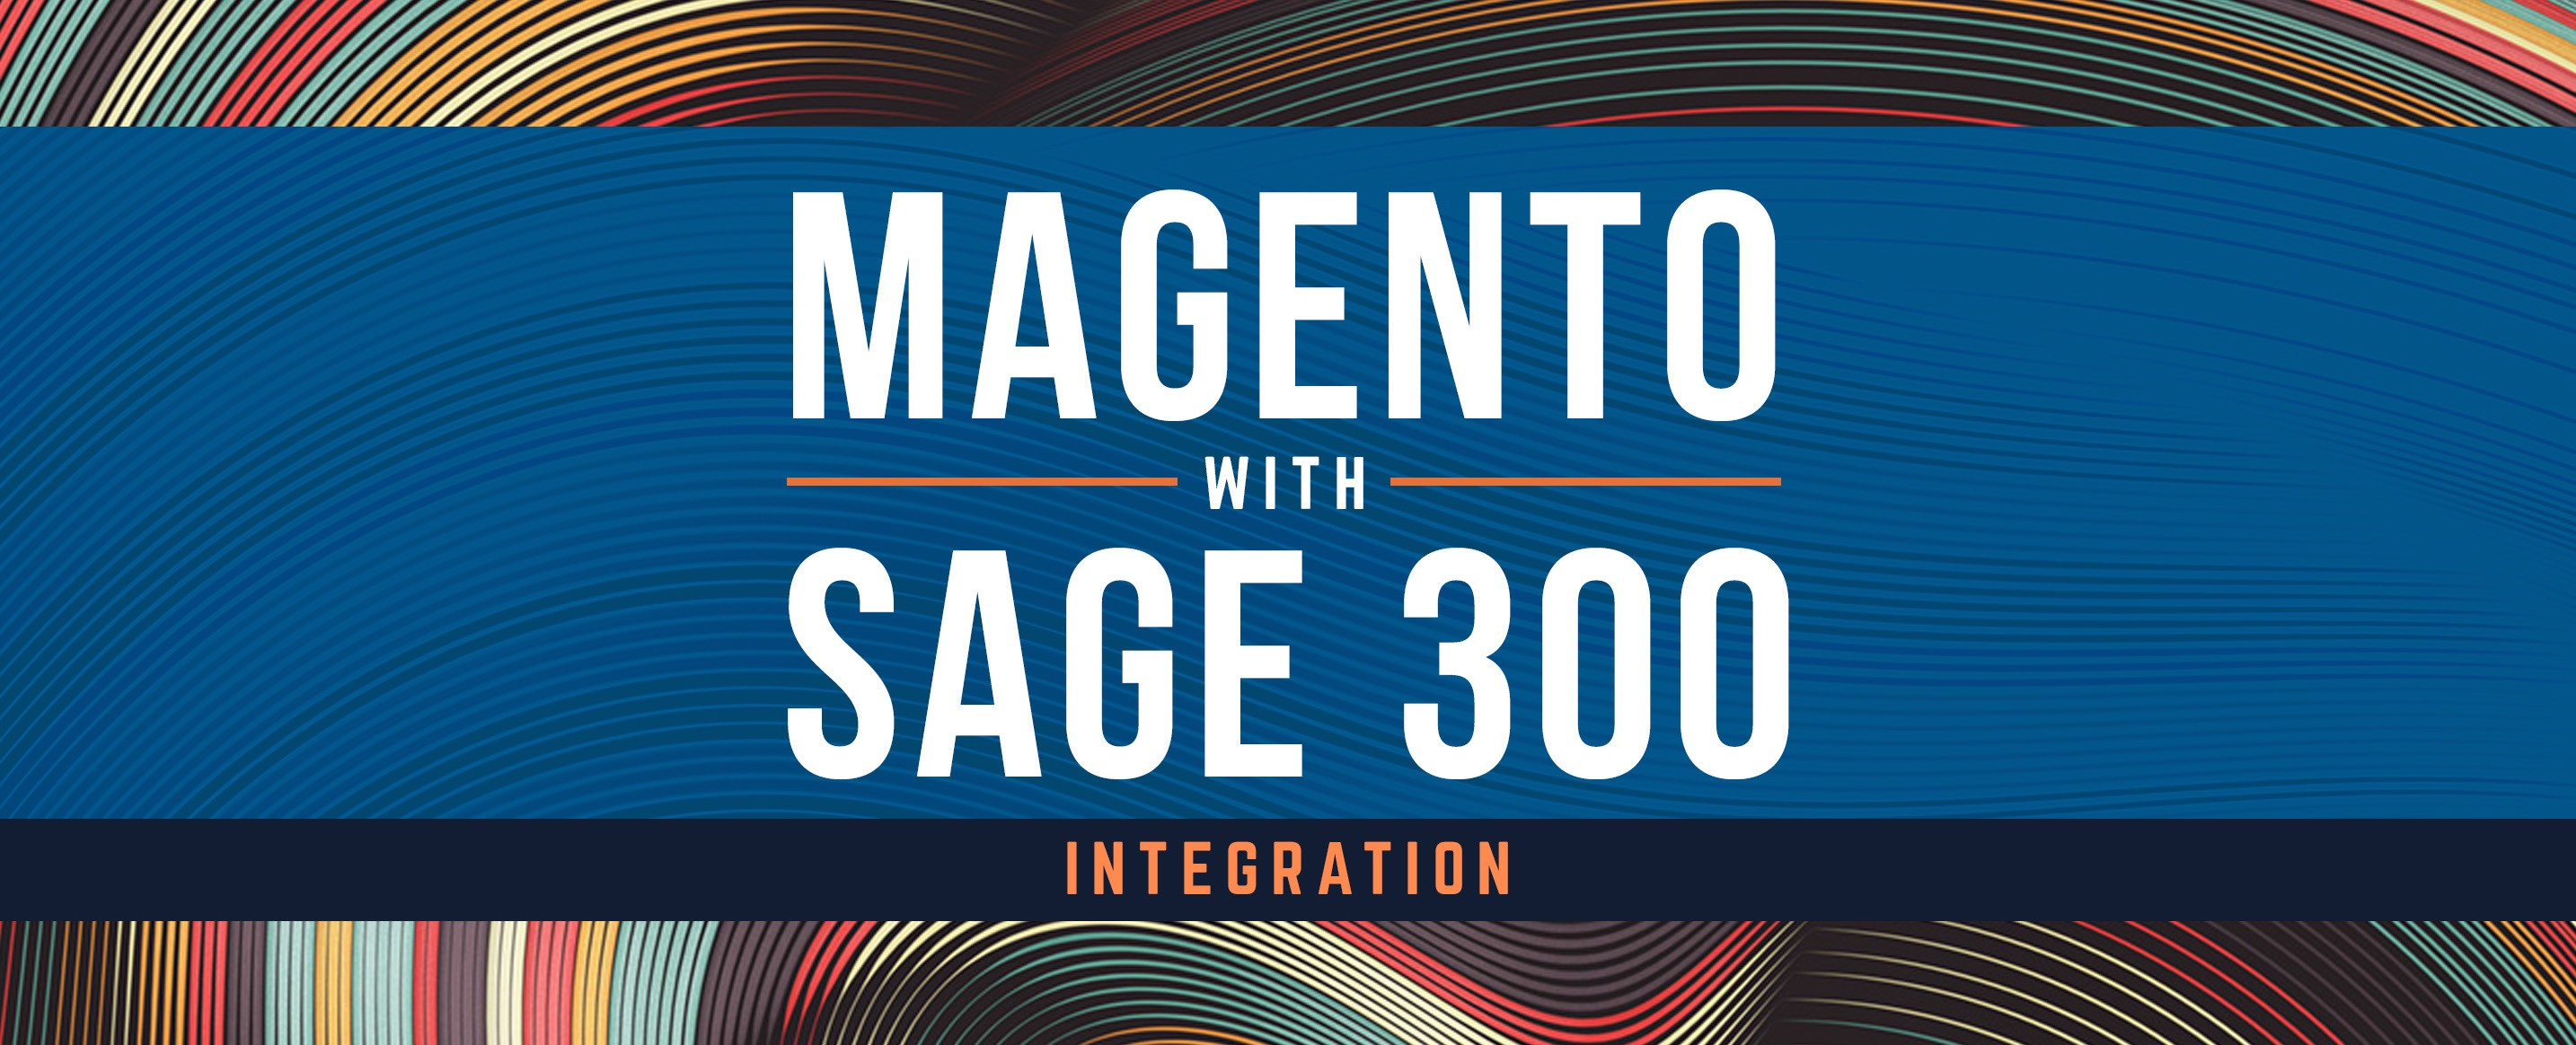 How Magento And Sage 300 Integration Can Ease Your Pain